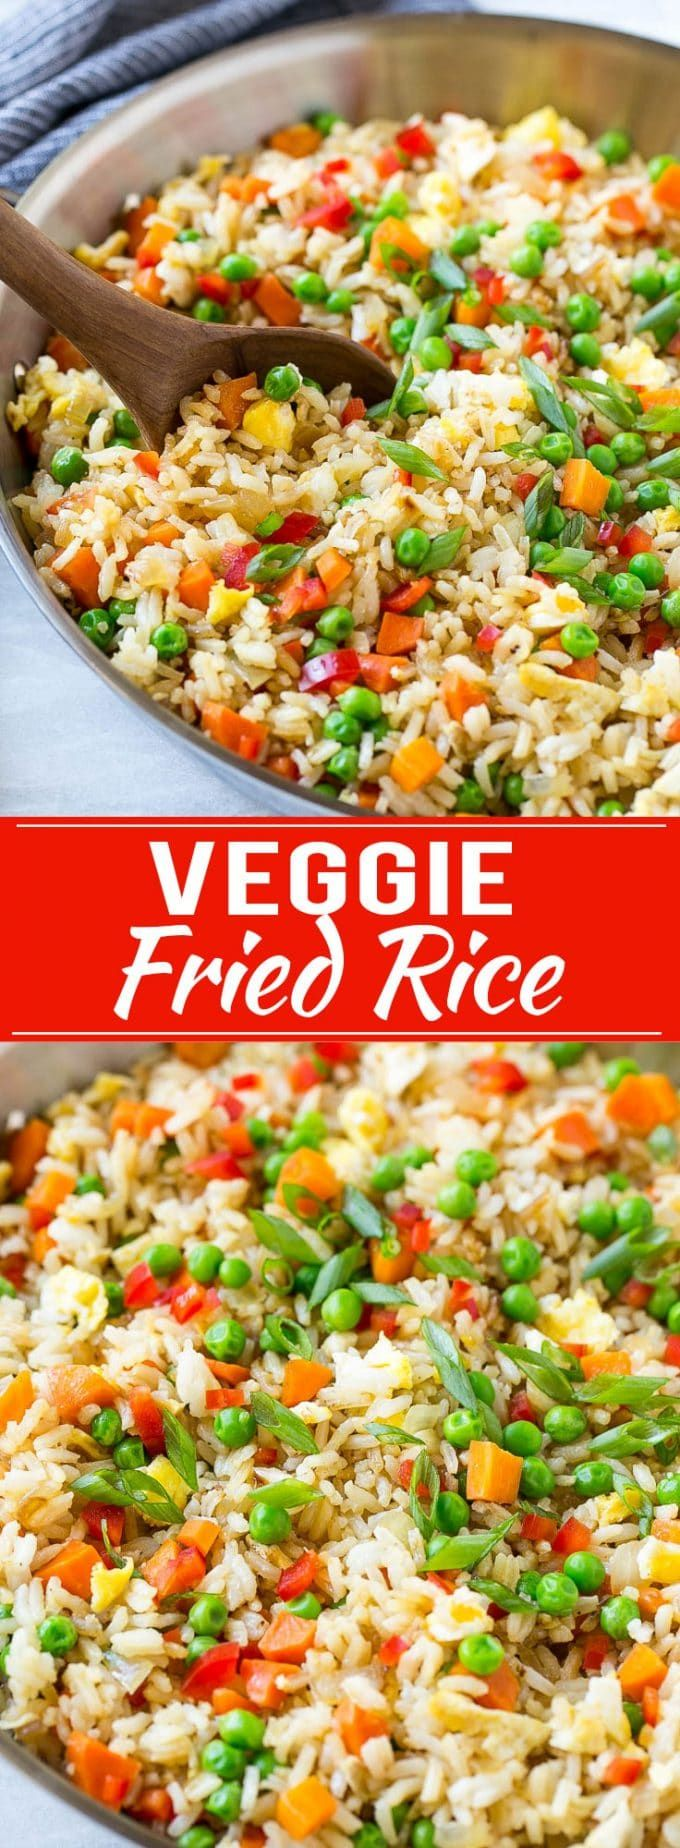 Veggie Fried Rice Recipe | Vegetarian Fried Rice | Easy Fried Rice Recipe | Chinese Food | Take Out